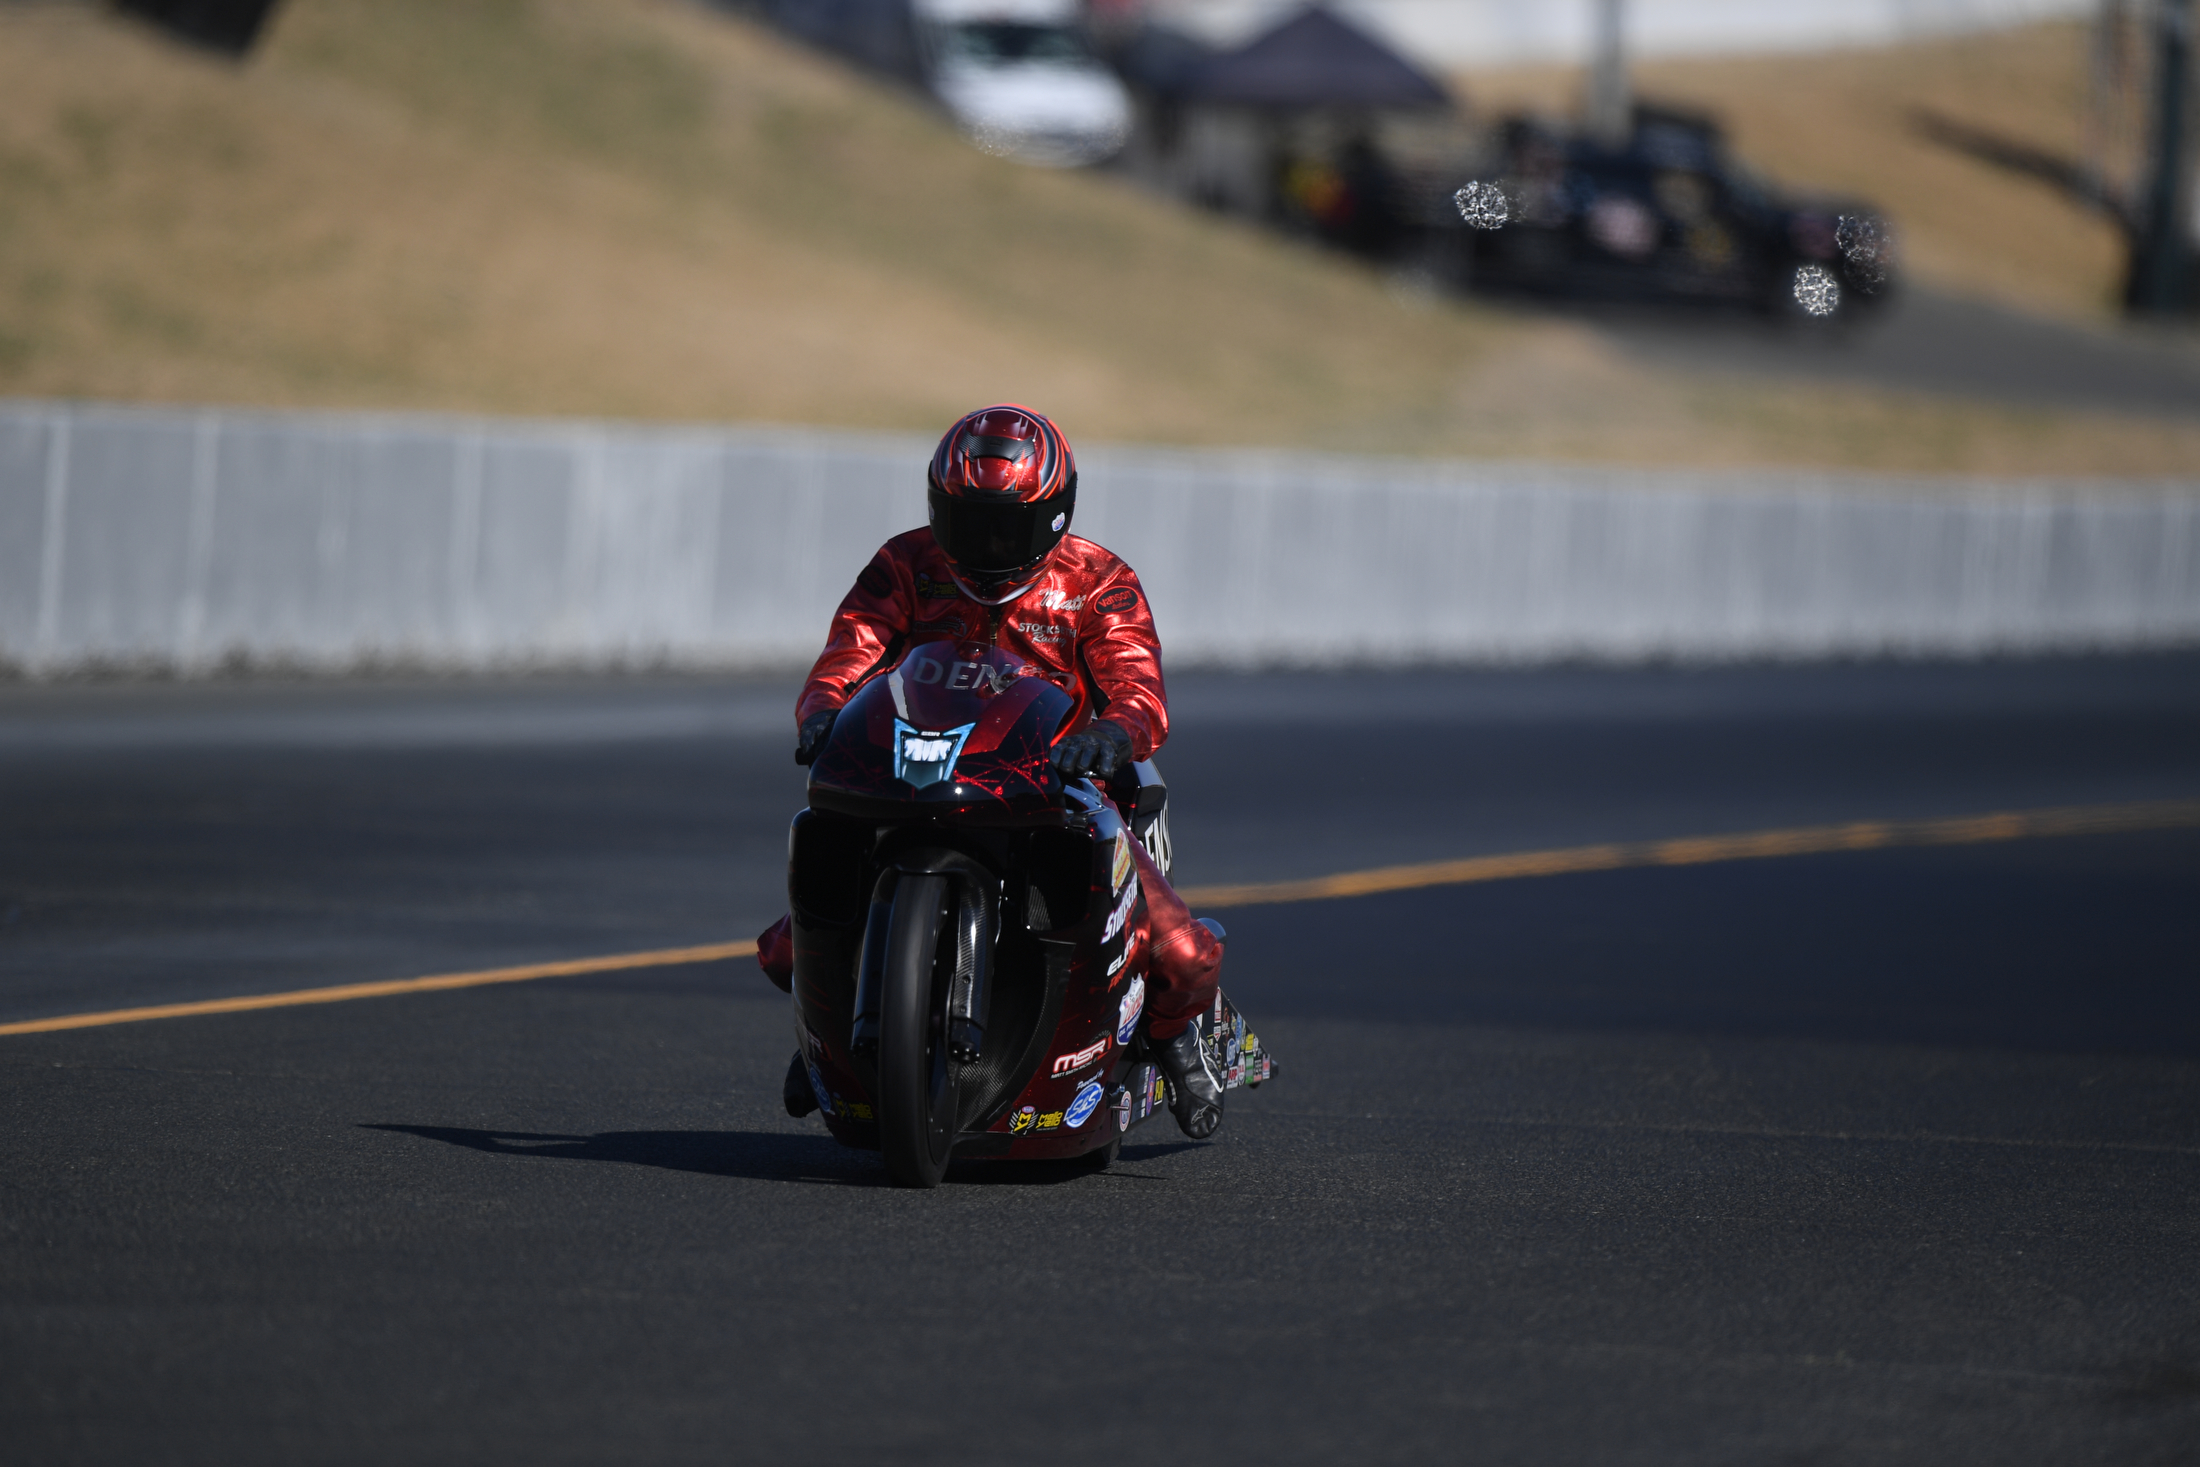 Pro Stock Motorcycle rider Matt Smith racing on Saturday at the 2019 Toyota NHRA Sonoma Nationals